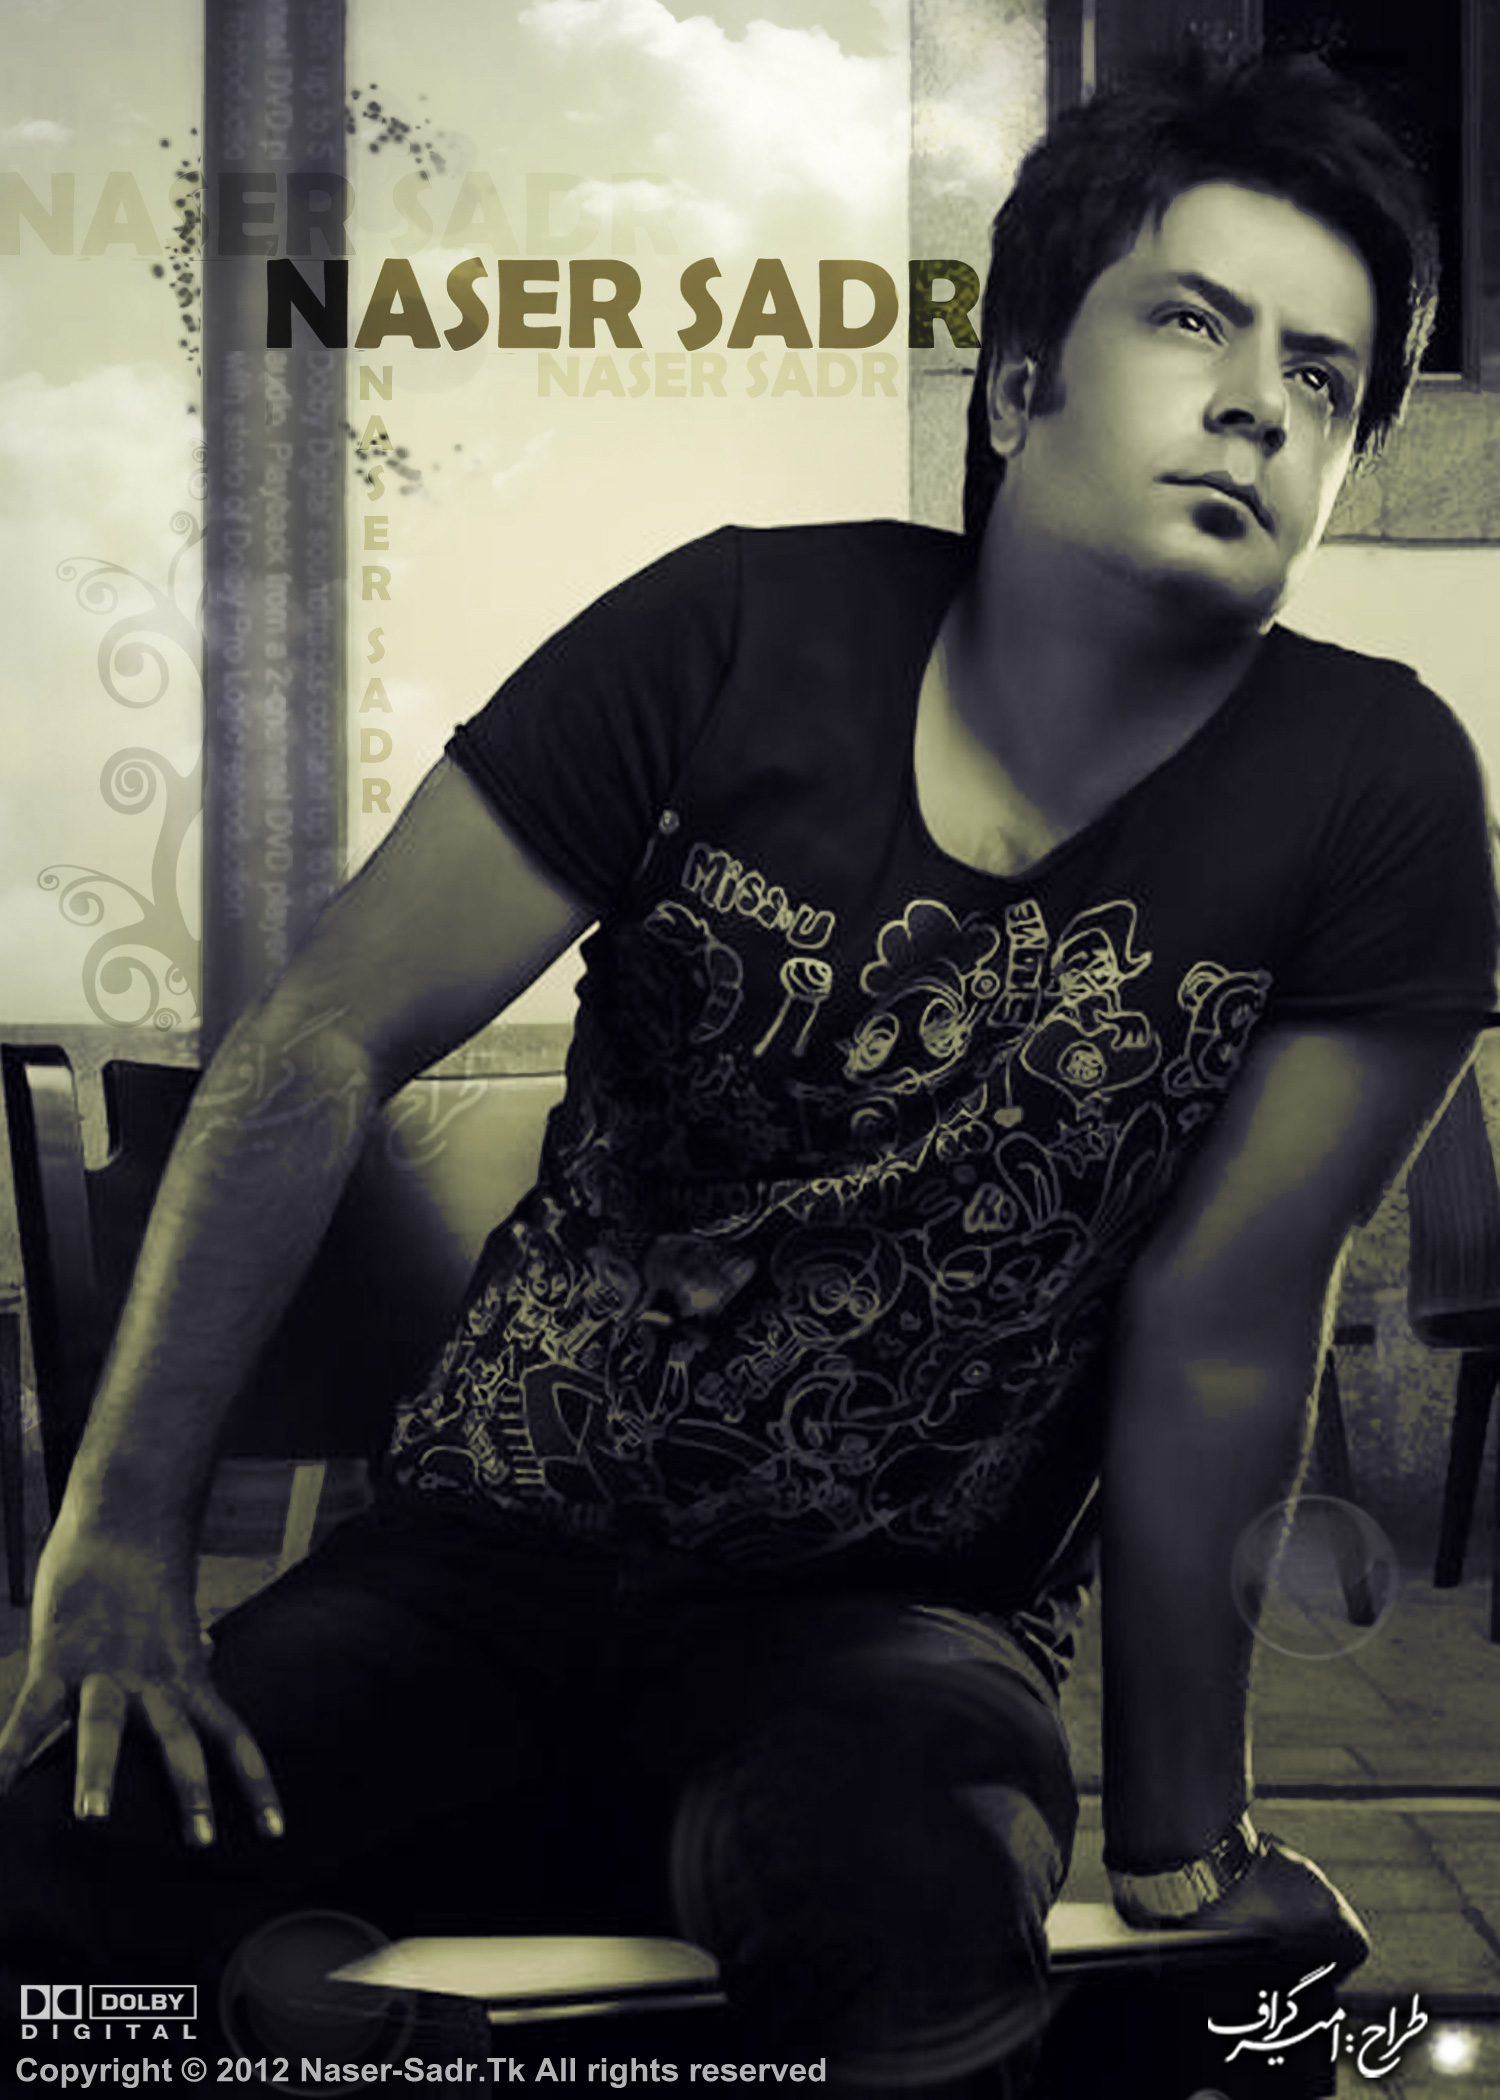 http://naser-sadr.persiangig.com/poster-naser.jpg